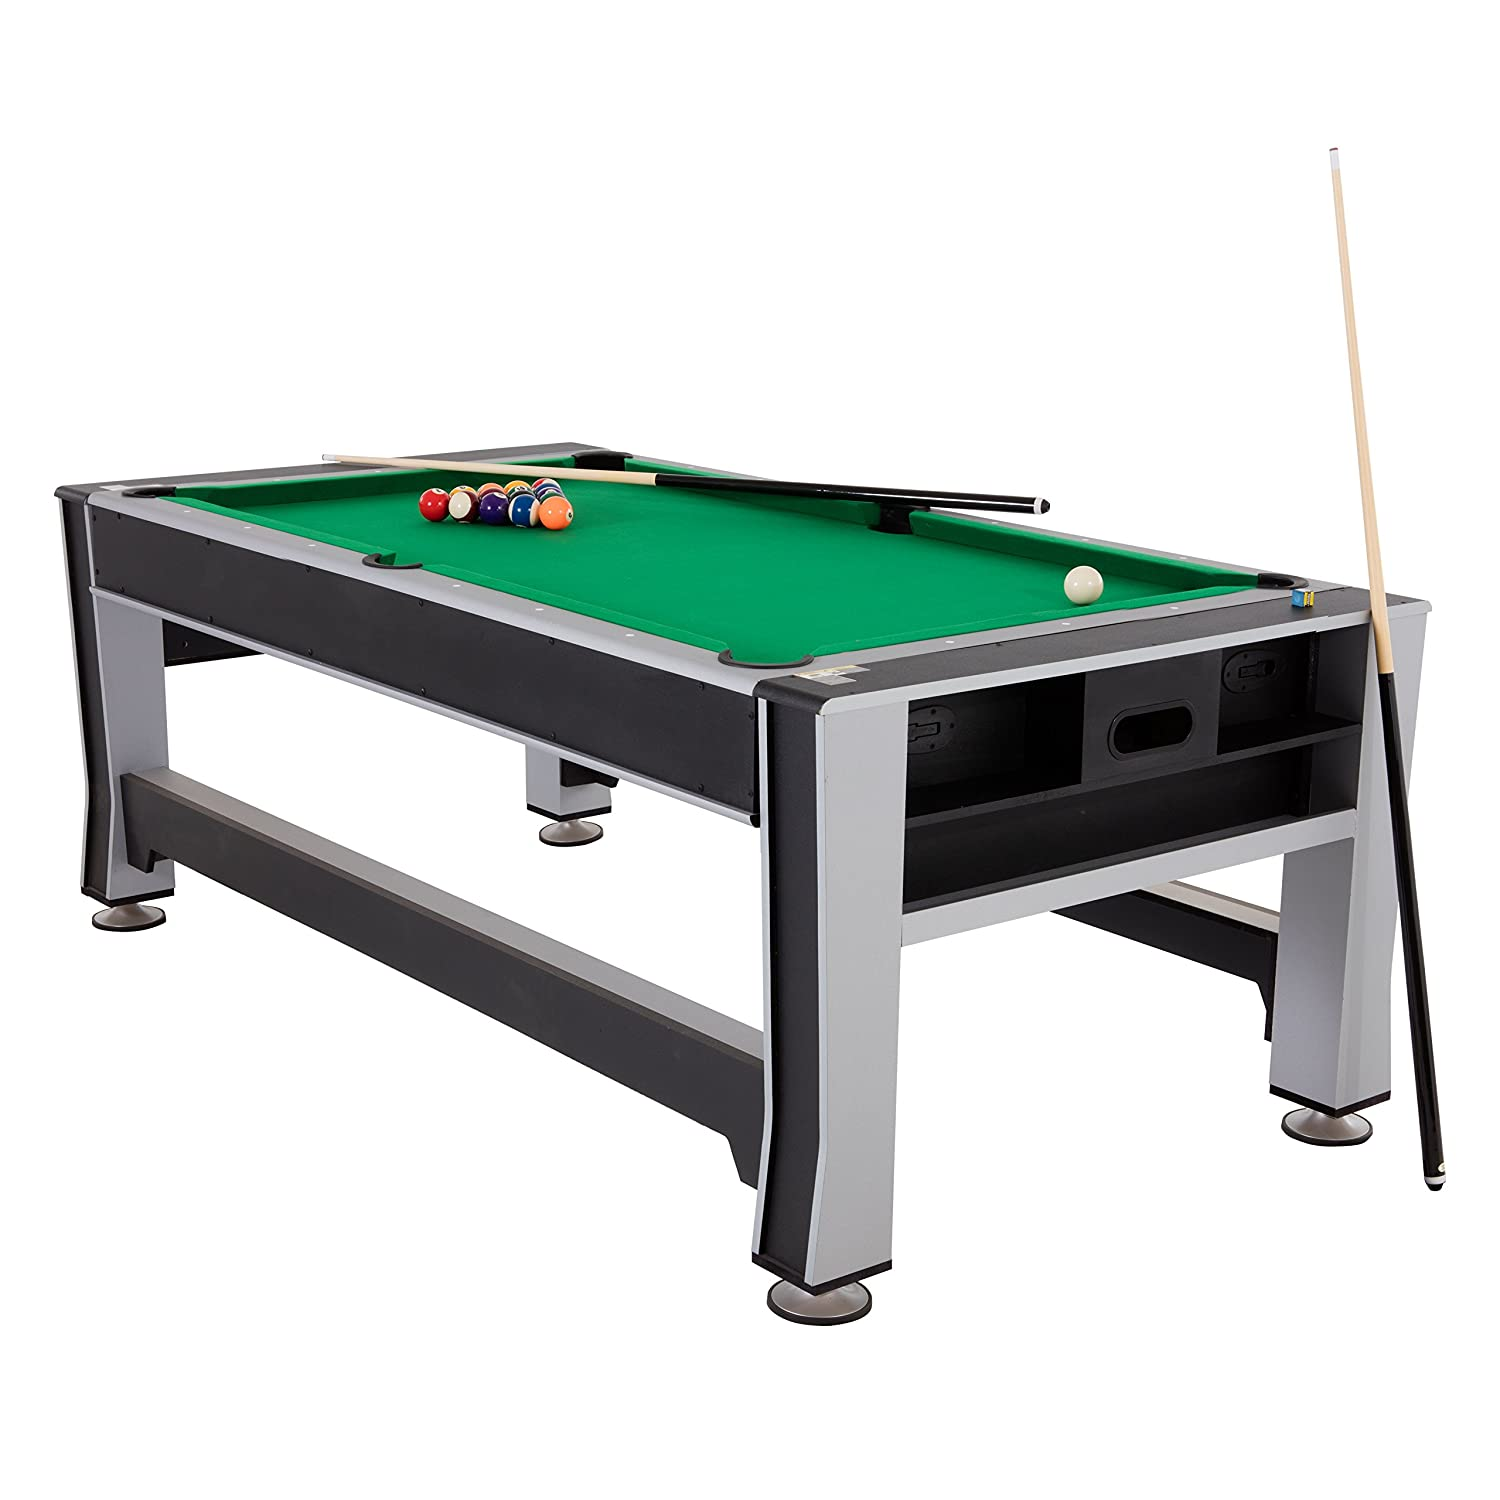 Amazoncom Triumph In Swivel Multigame Table Sports Outdoors - 84 pool table